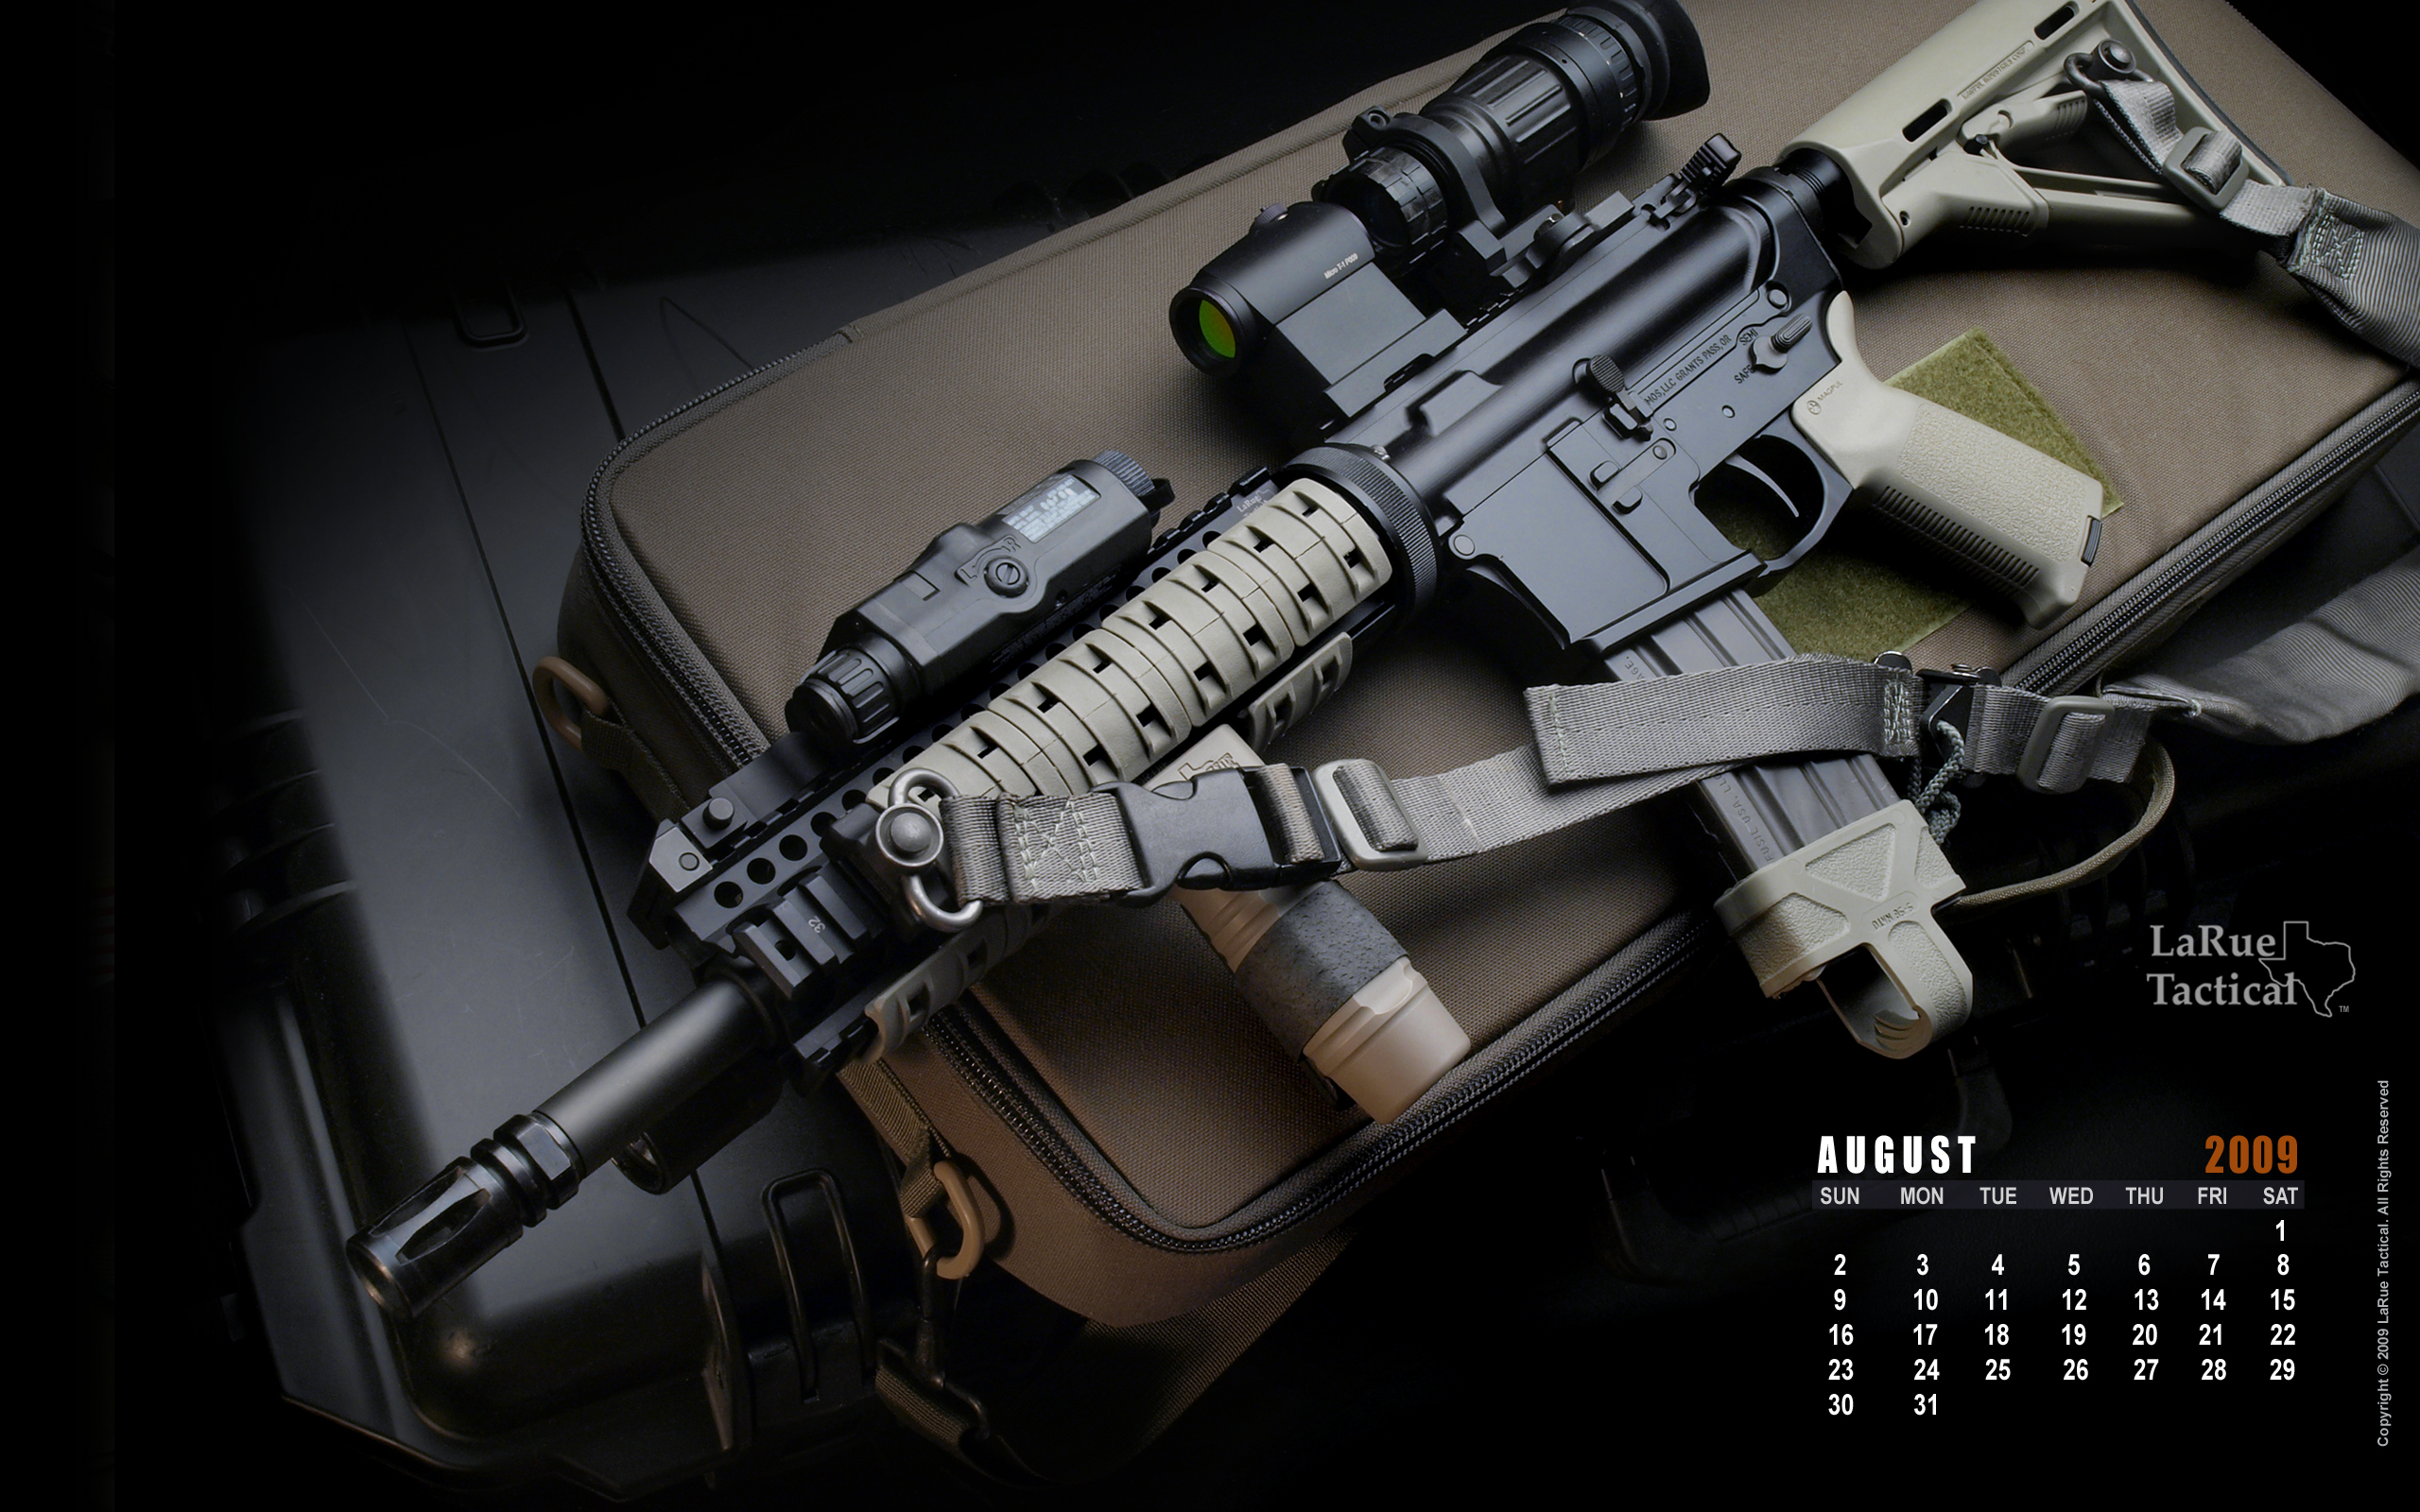 Guns Weapons Wallpaper 2560x1600 Guns Weapons Calendar M4 2560x1600